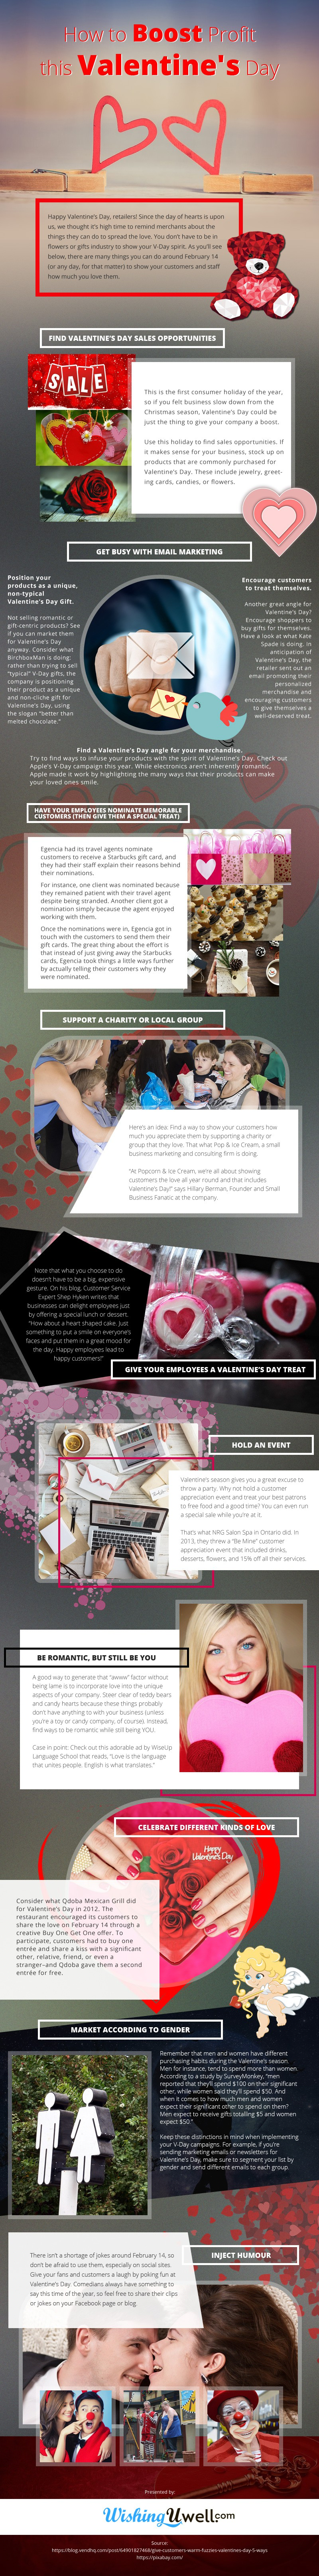 How-to-Boost-Profit-this-Valentines-Day Infographic